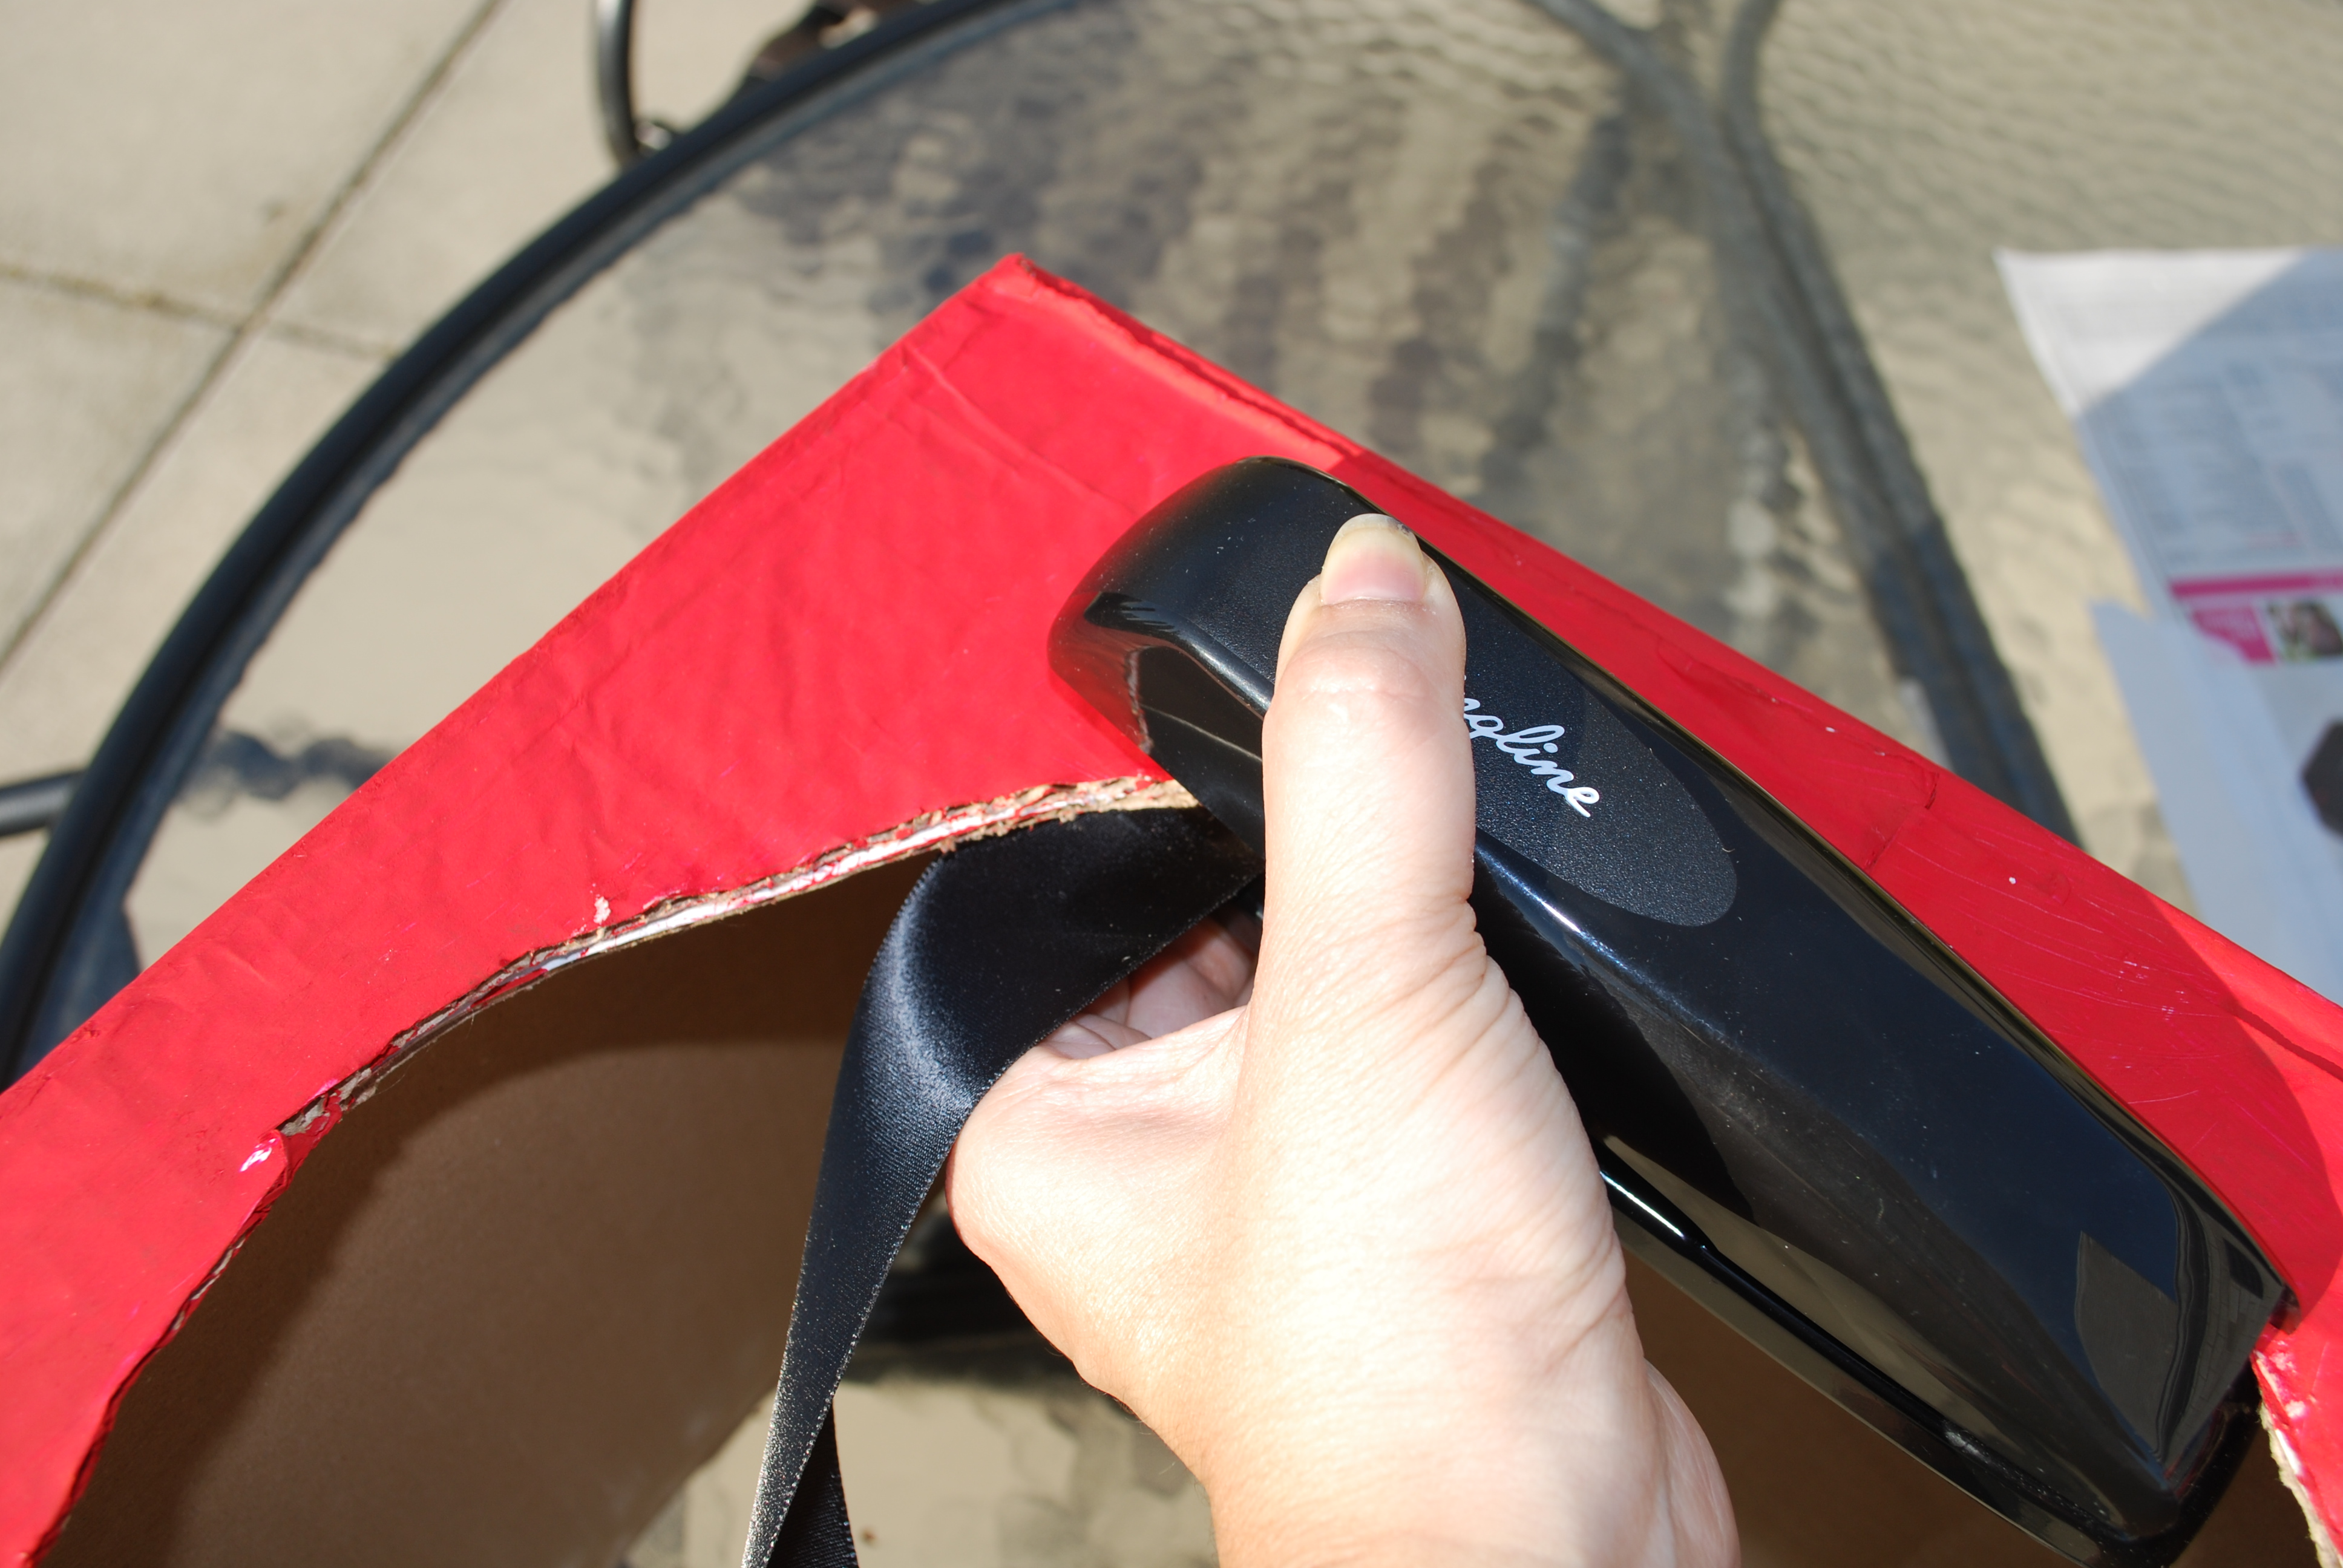 Staple each ribbon to the underside of the body of the fire engine.